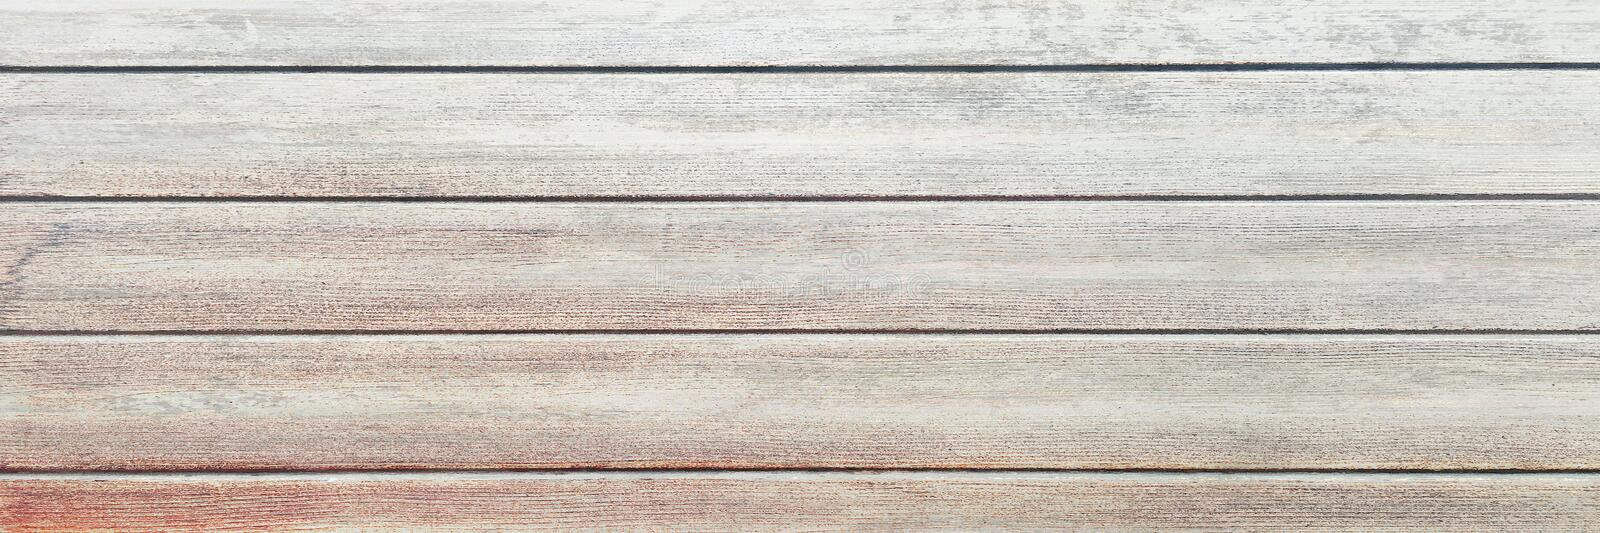 Washed wood texture, white wooden abstract light background. Washed wood texture, white wooden abstract background stock photo